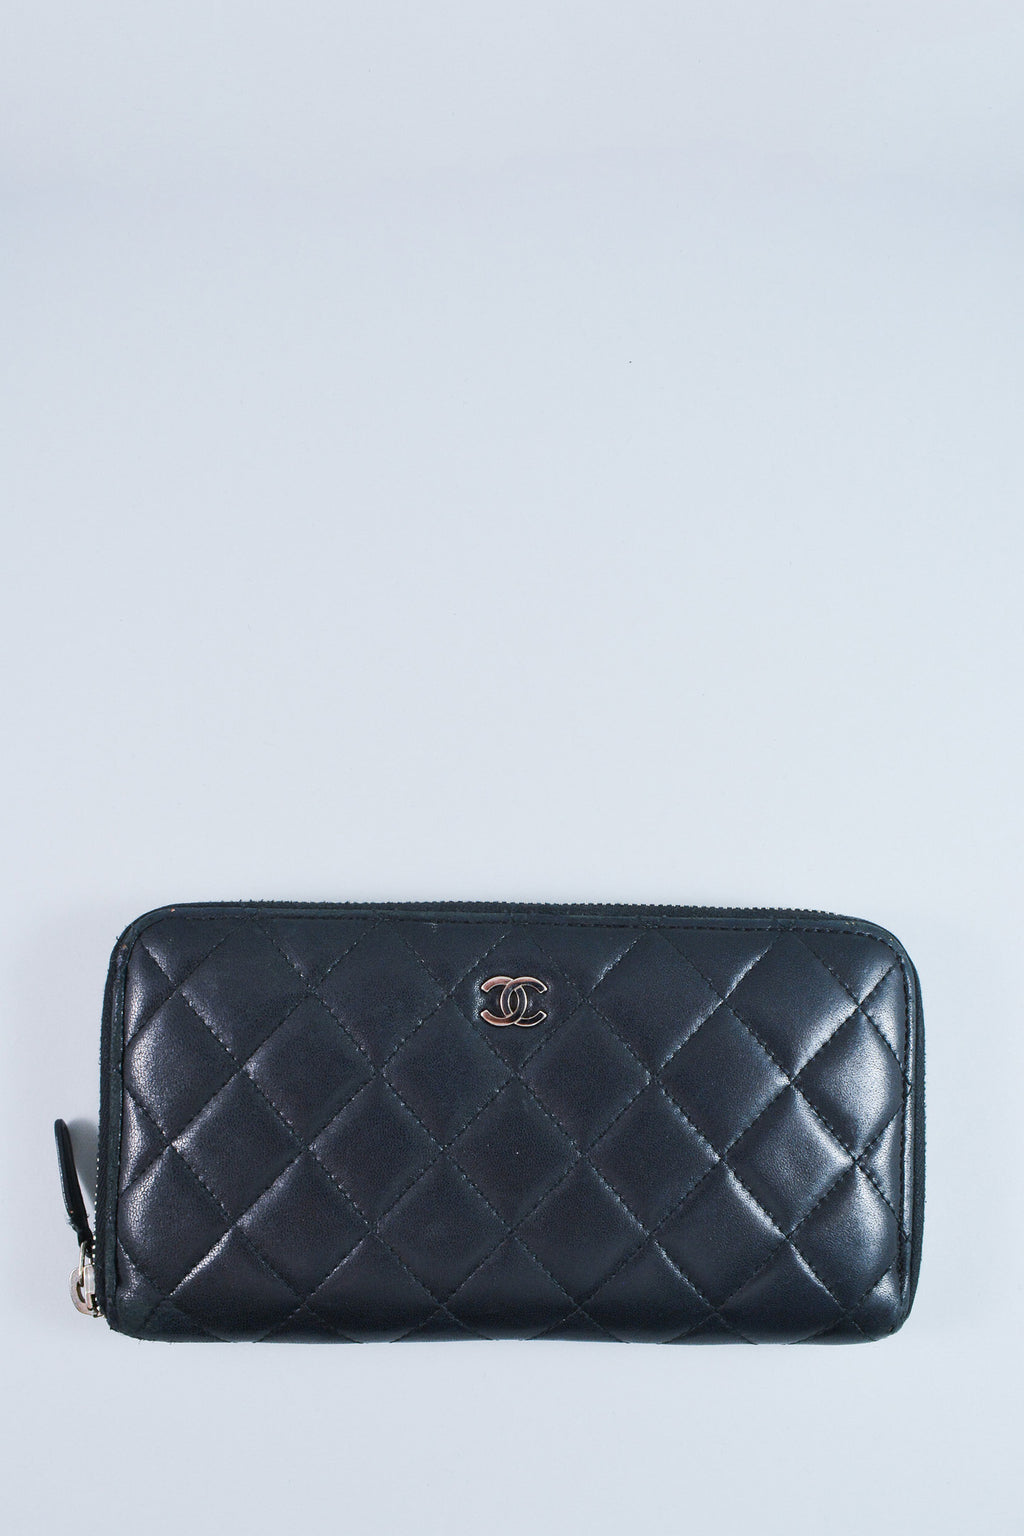 Chanel Classic Large Zip Wallet